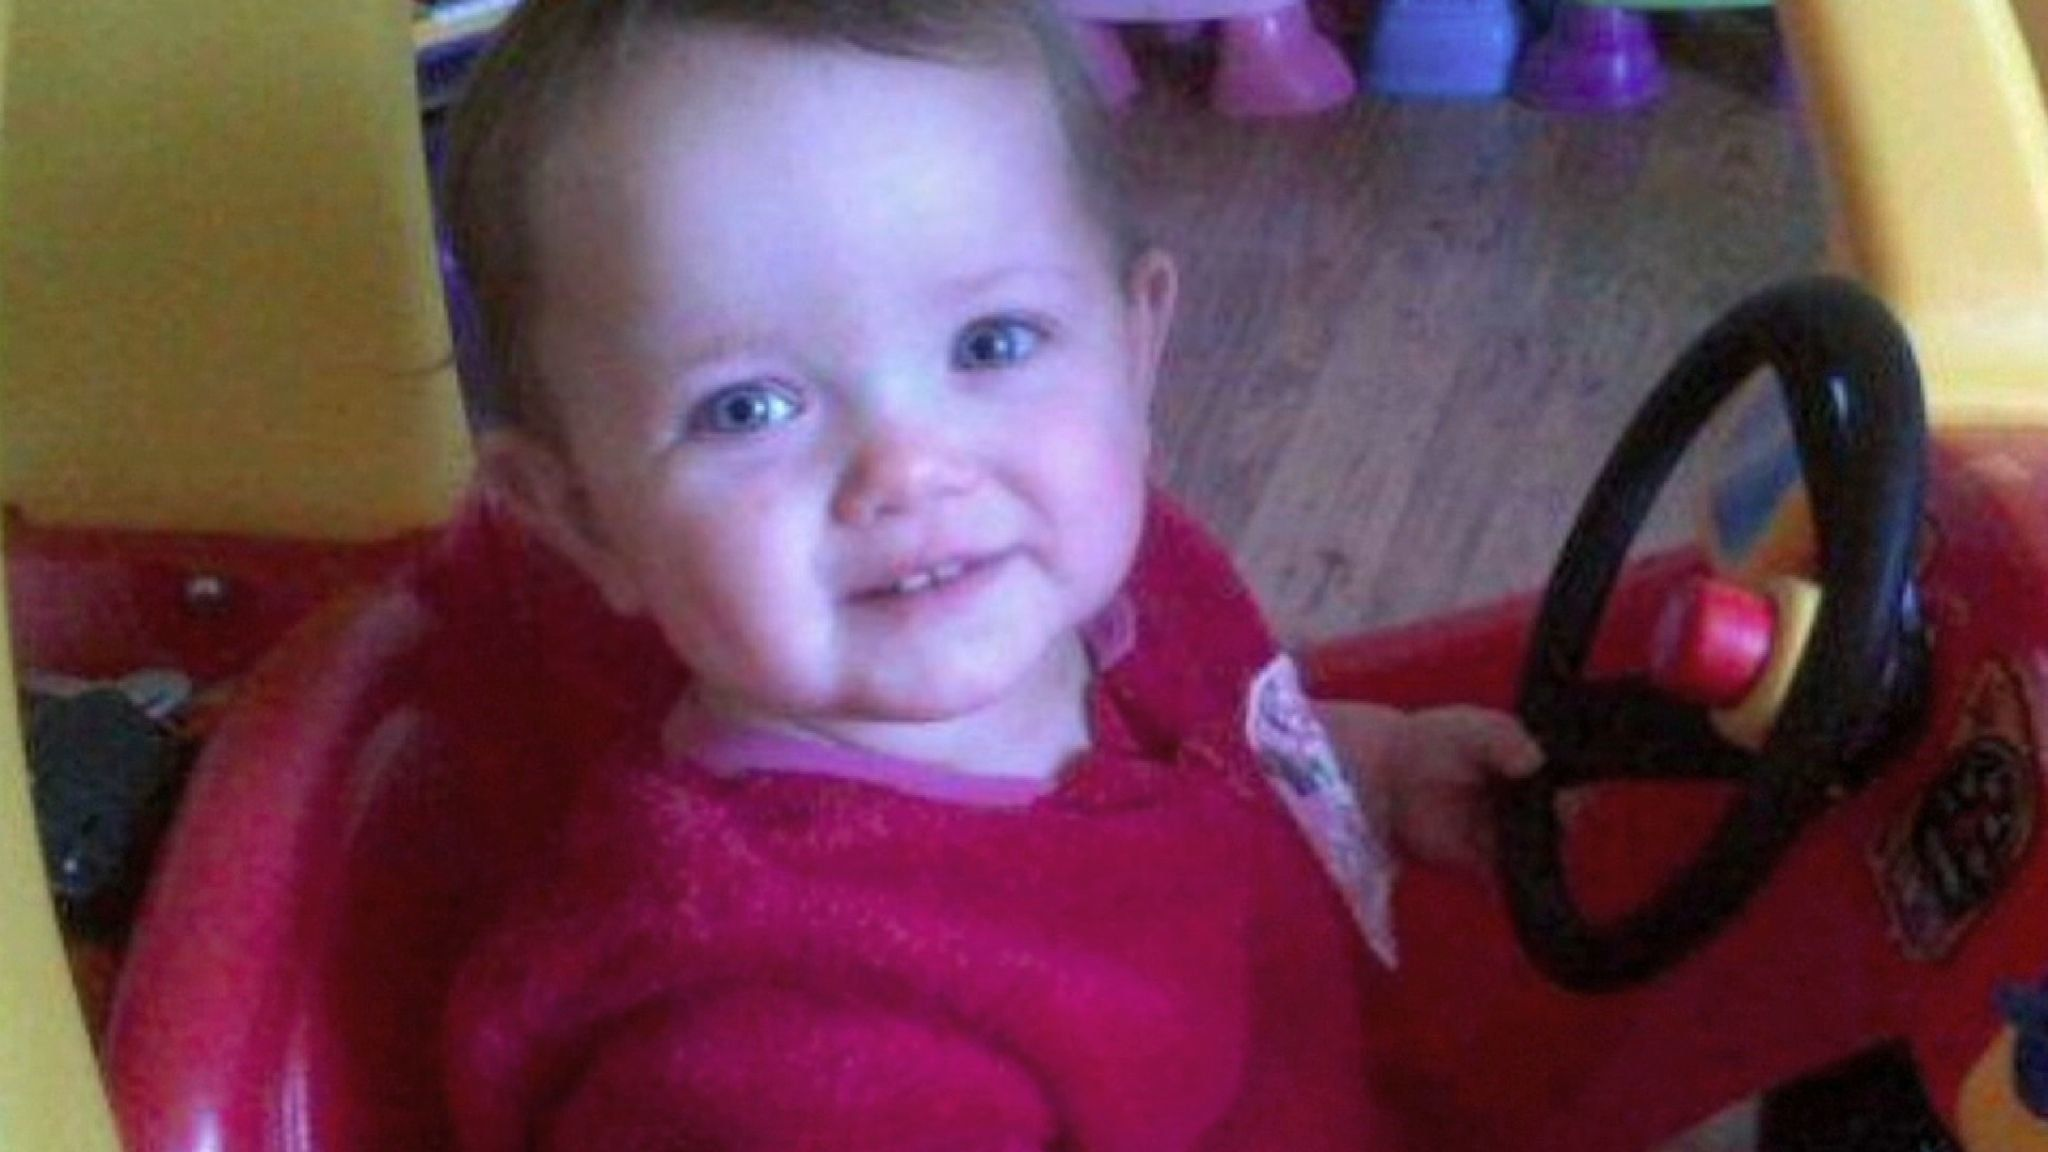 Toddler Poppi Worthington Was Sexually Abused Before She Died, Coroner